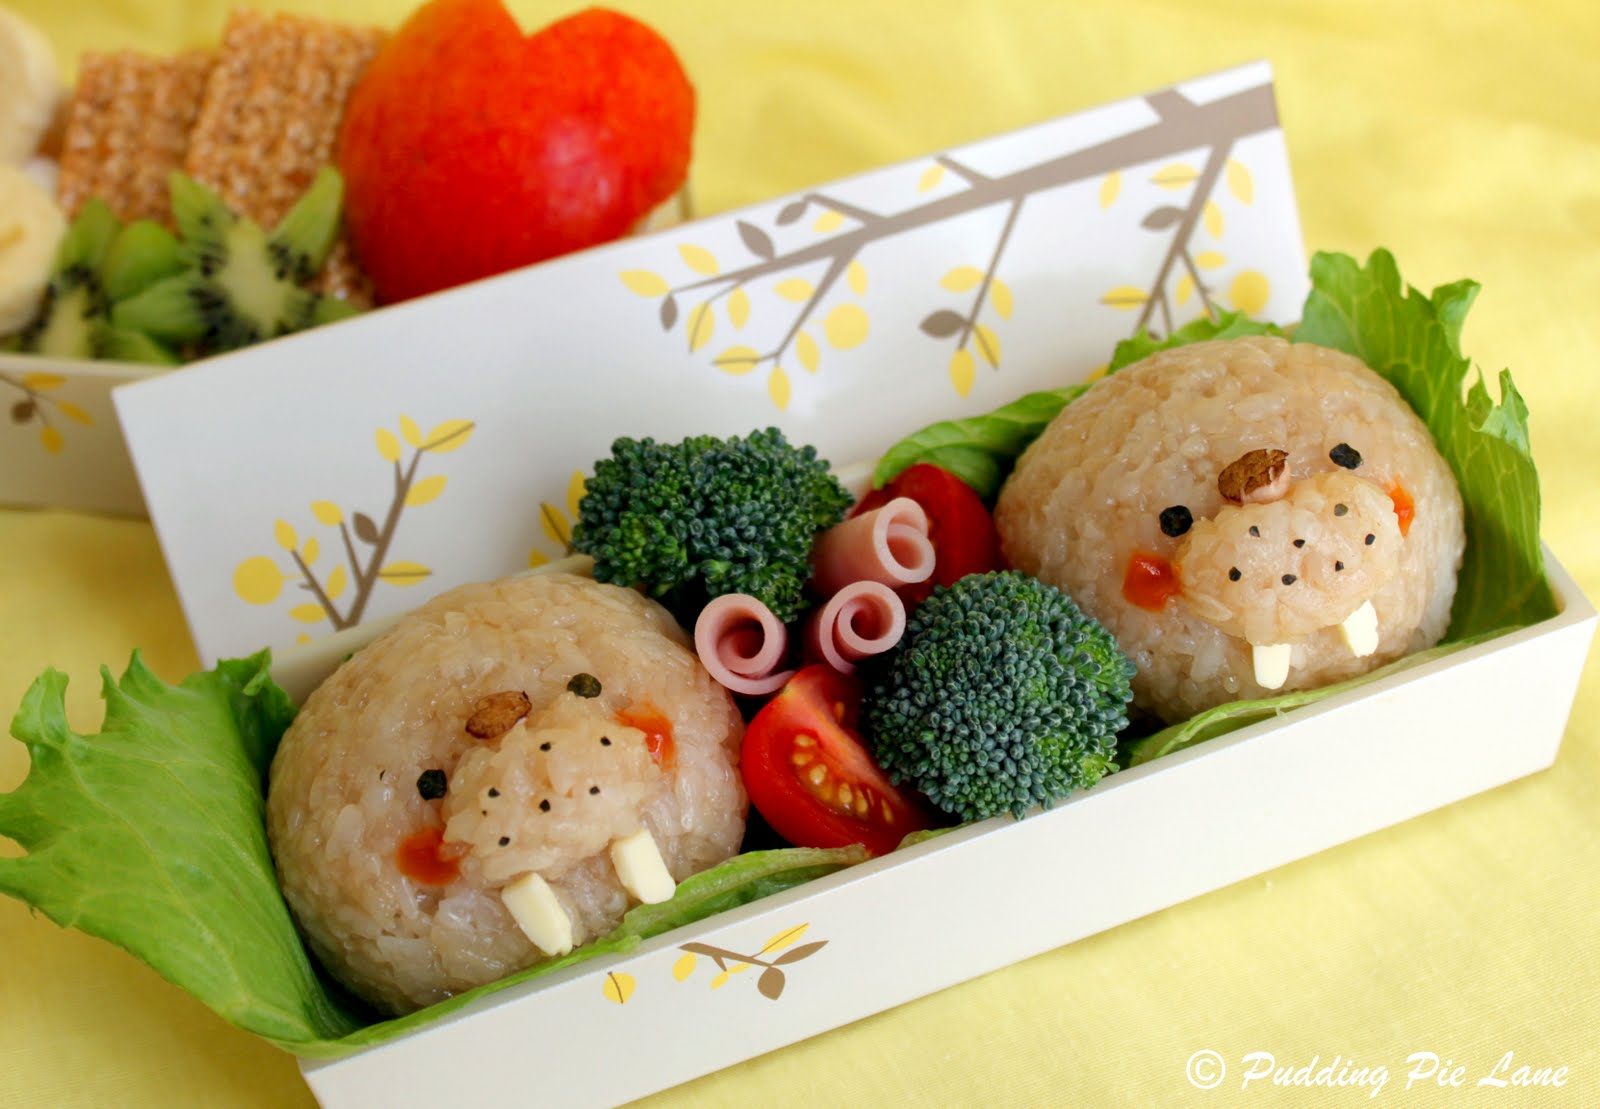 Walrus bento box